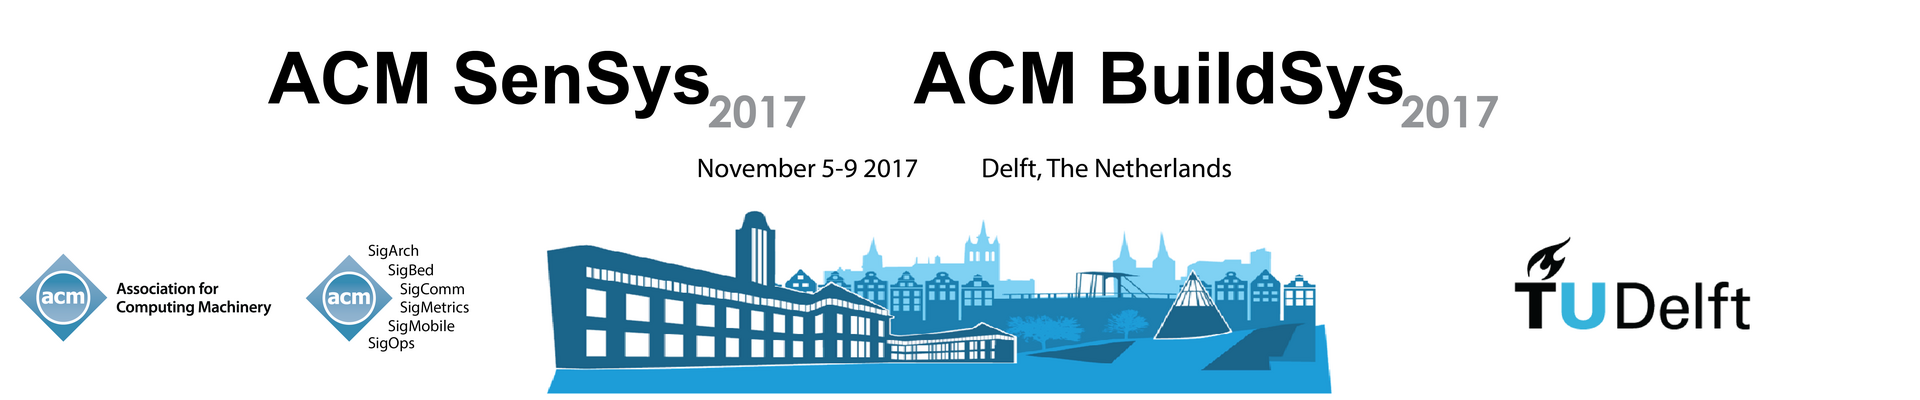 ACM SenSys & BuildSys 2017